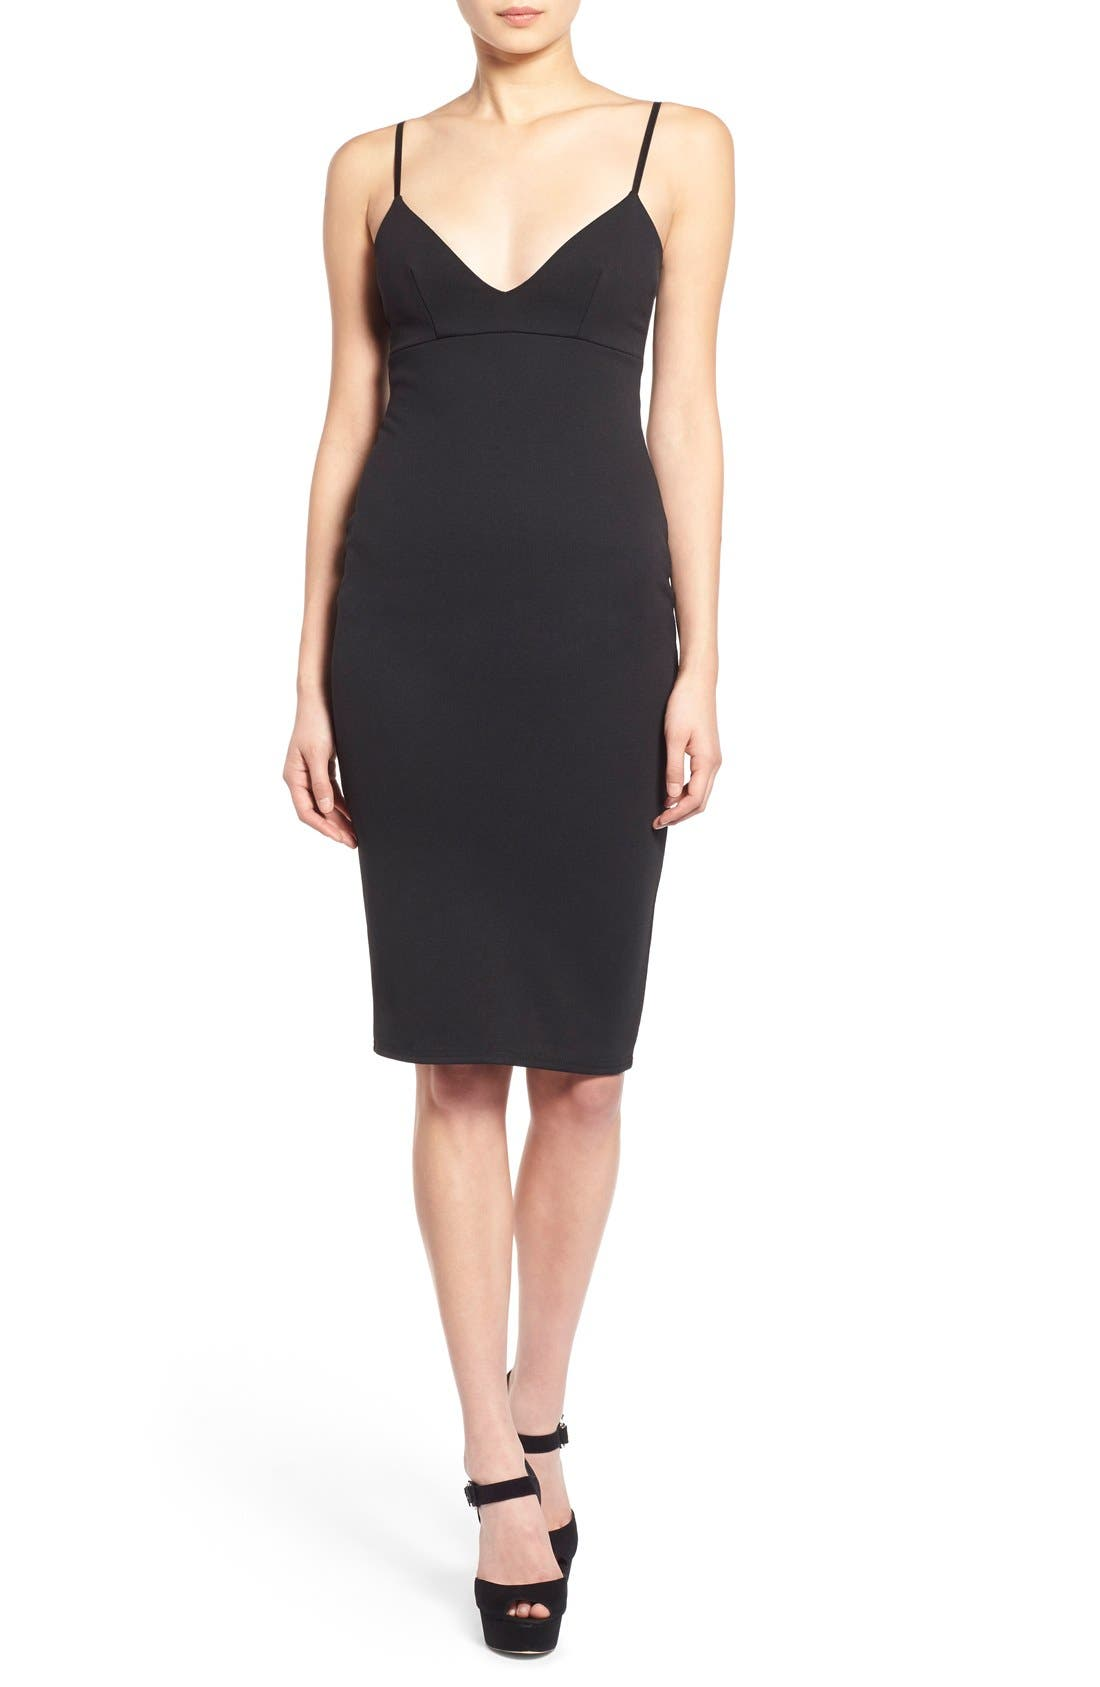 Alternate Image 1 Selected - Missguided V-Neck Body-Con Dress